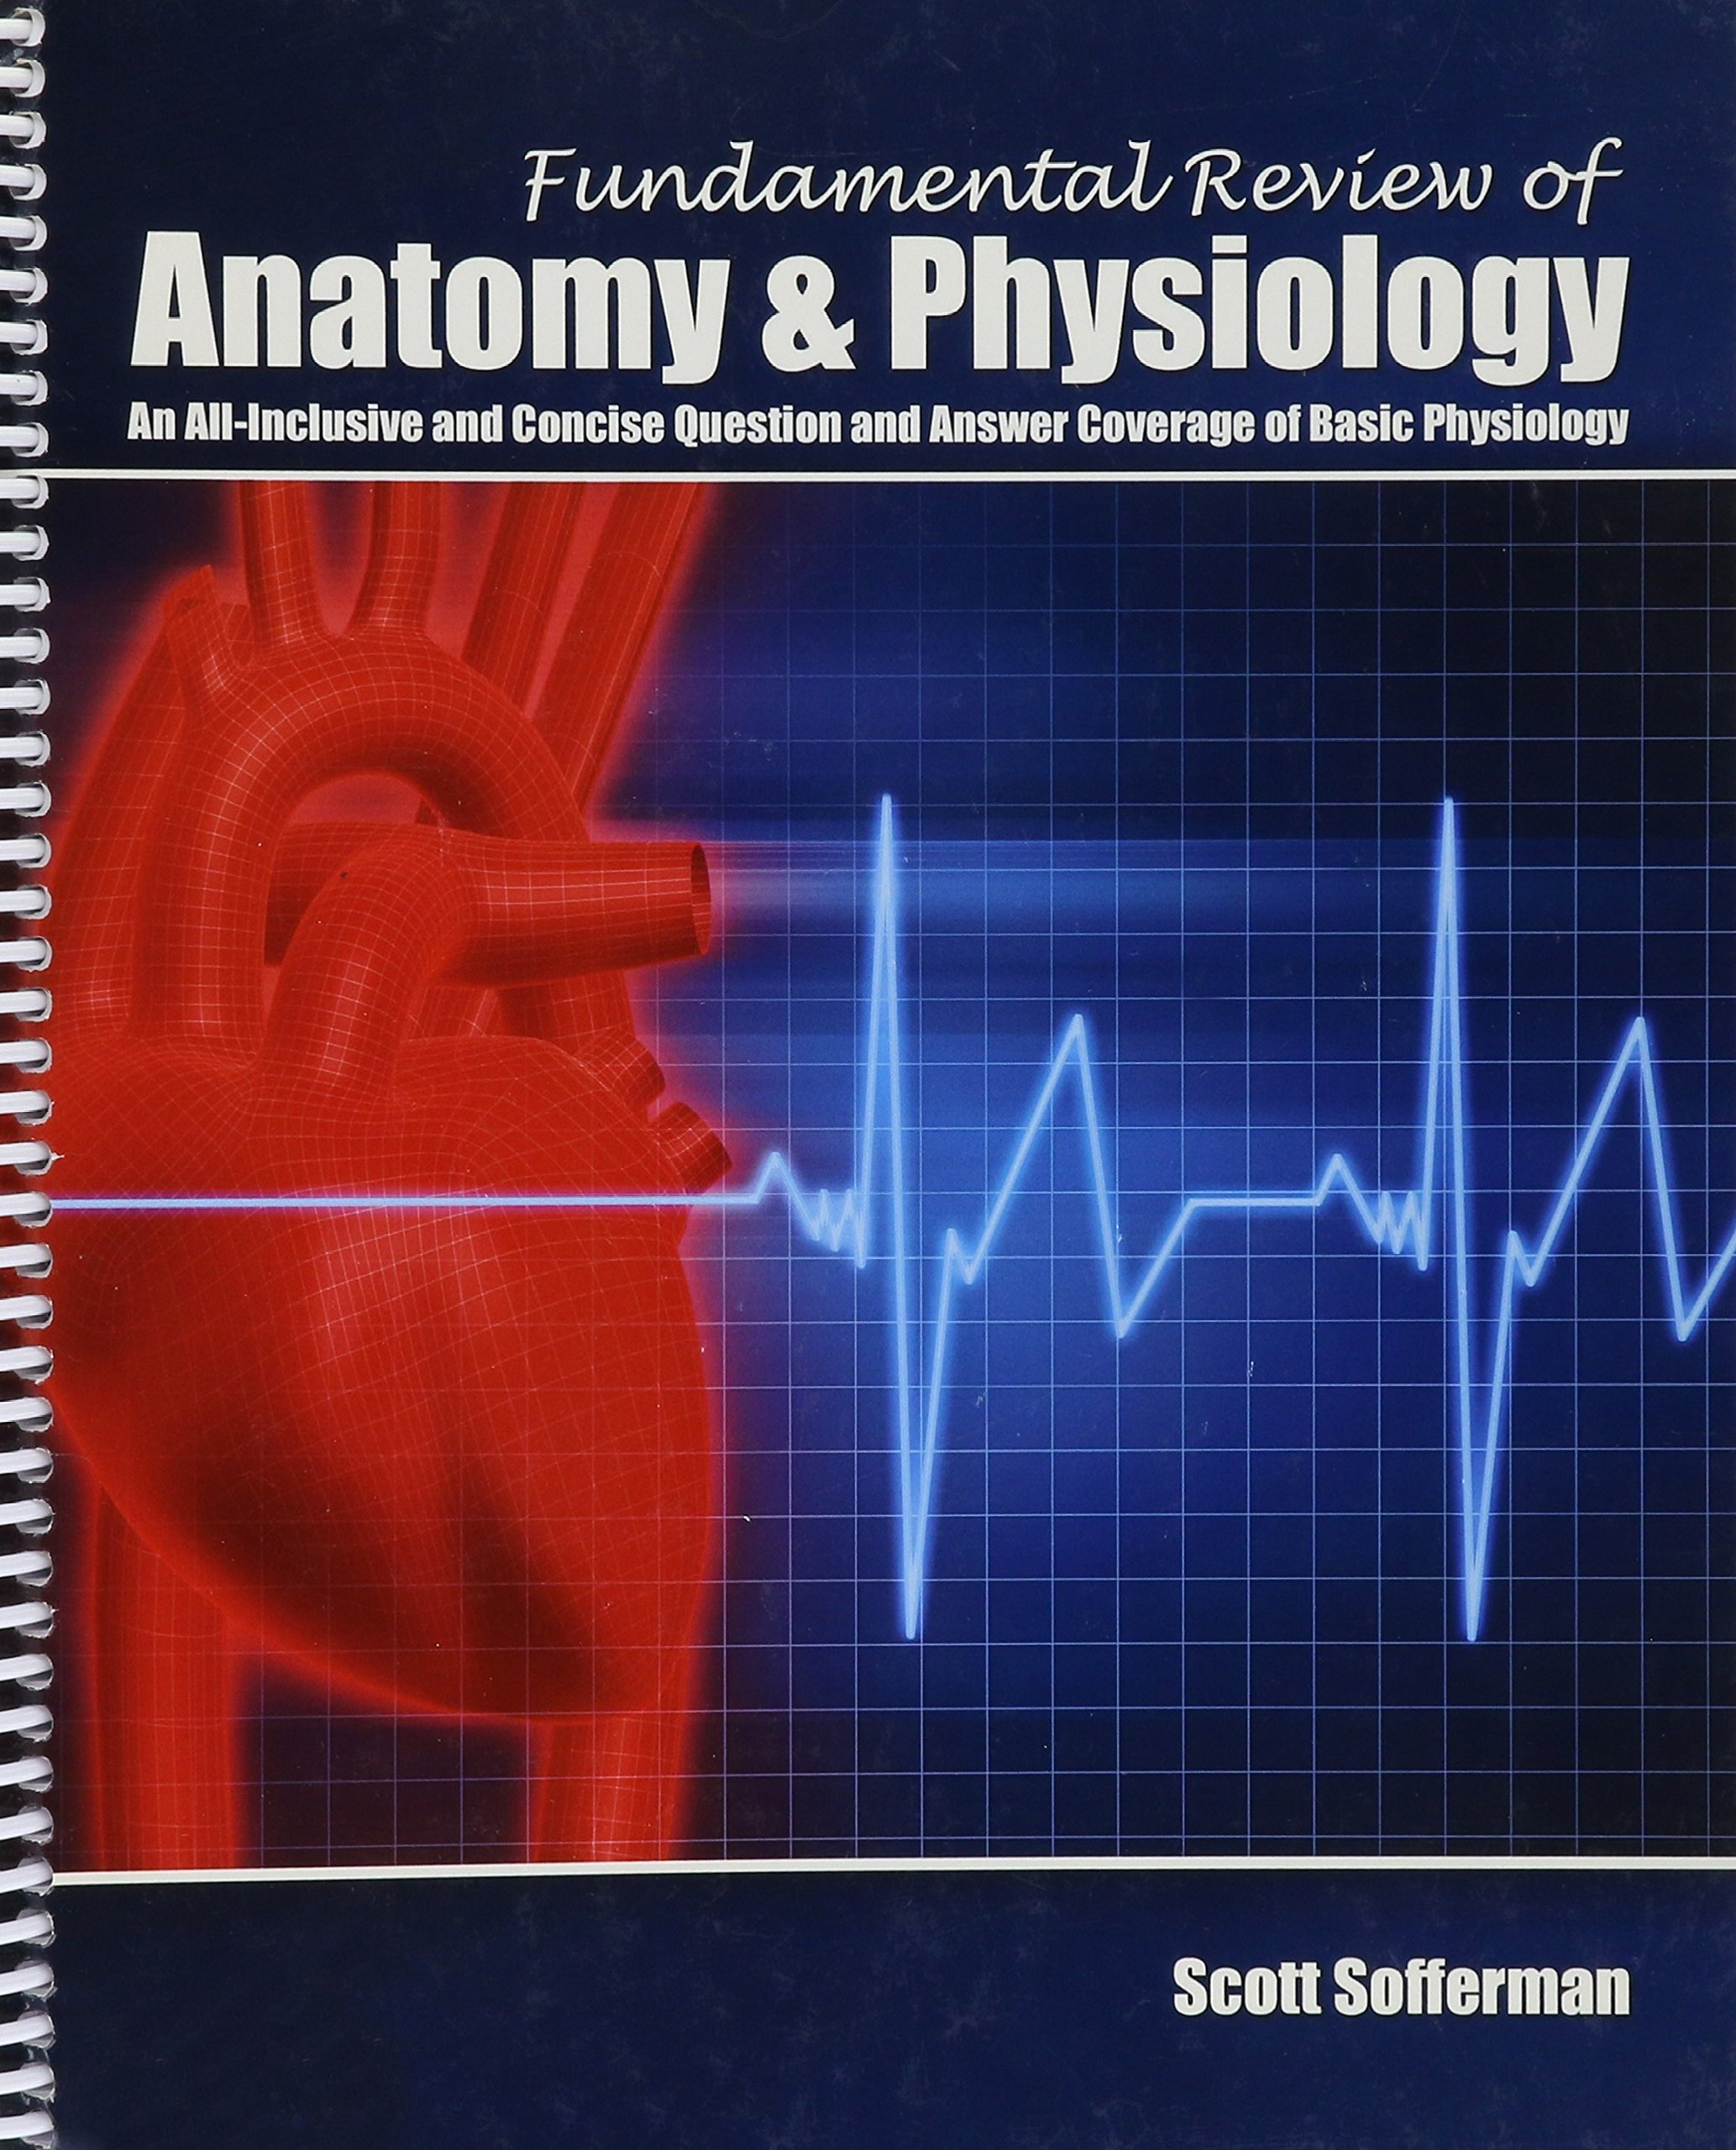 Fundamental Review of Anatomy and Physiology: Scott Sofferman ...